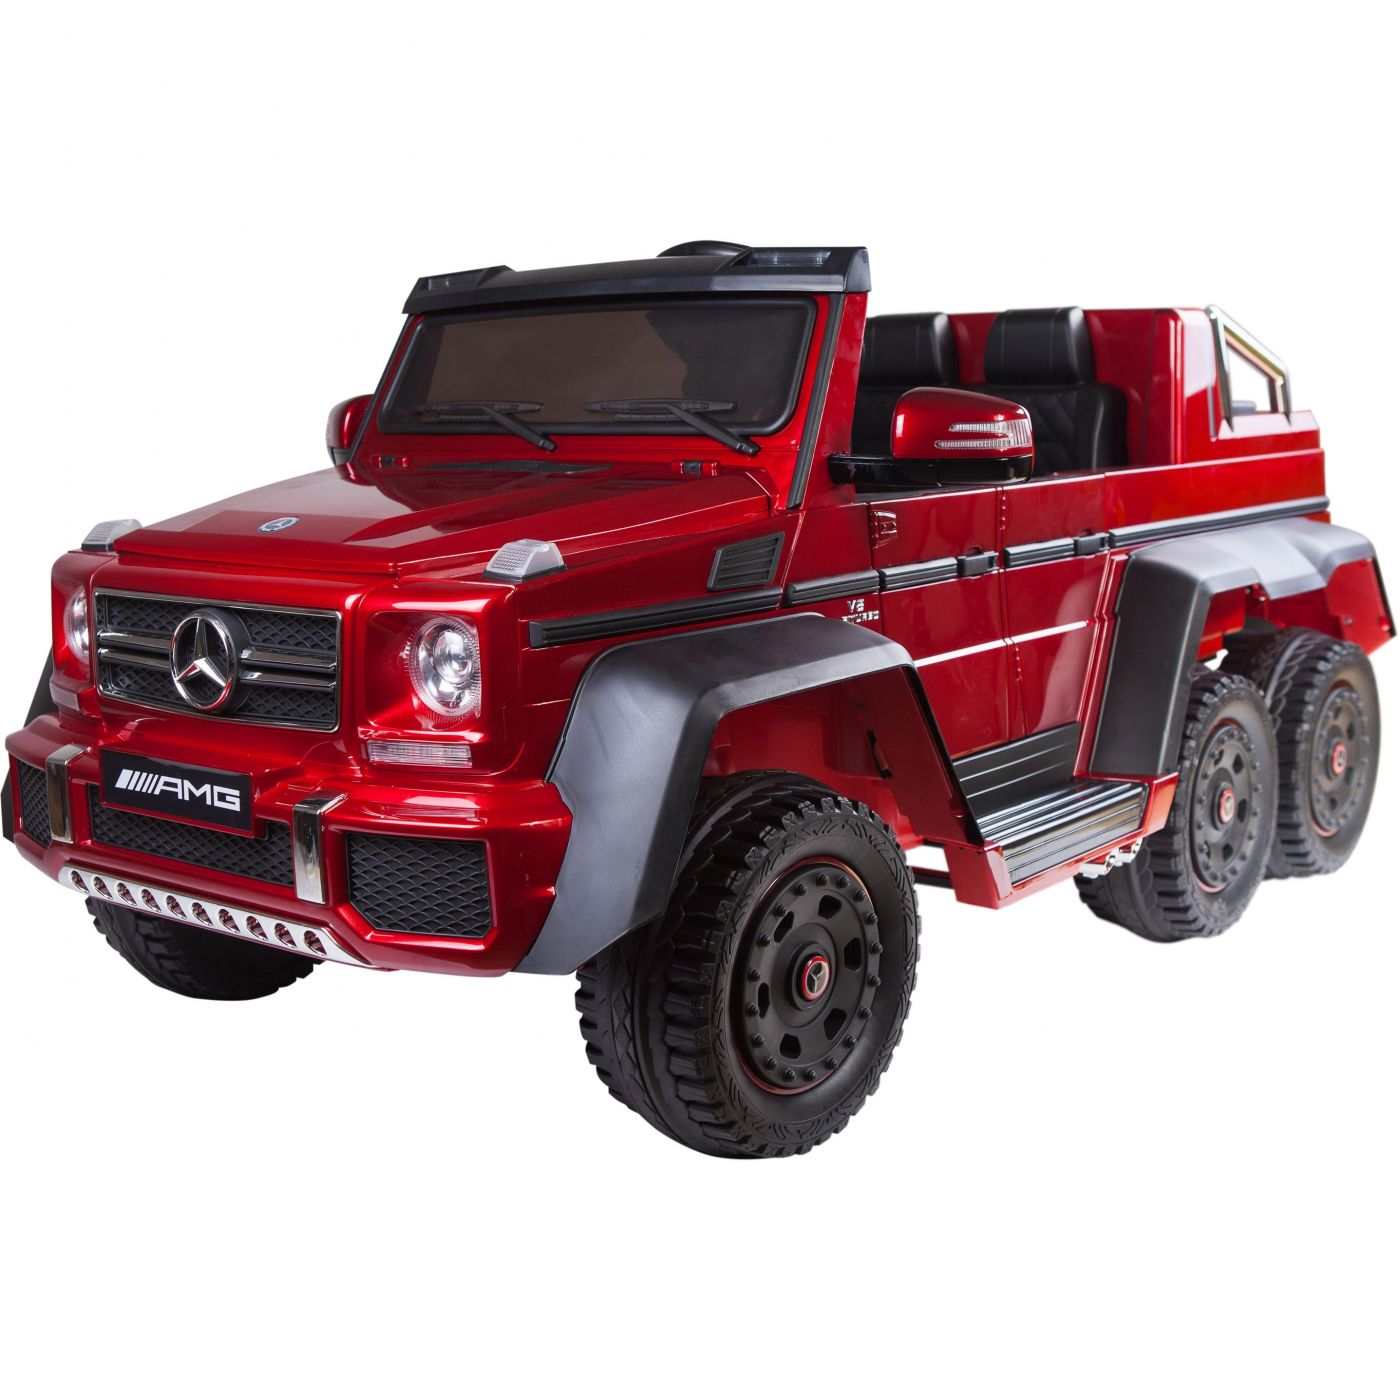 Mercedes 6X6 For Sale >> Licensed Mercedes Benz G63 6x6 Children S Electric Ride On Jeep Red